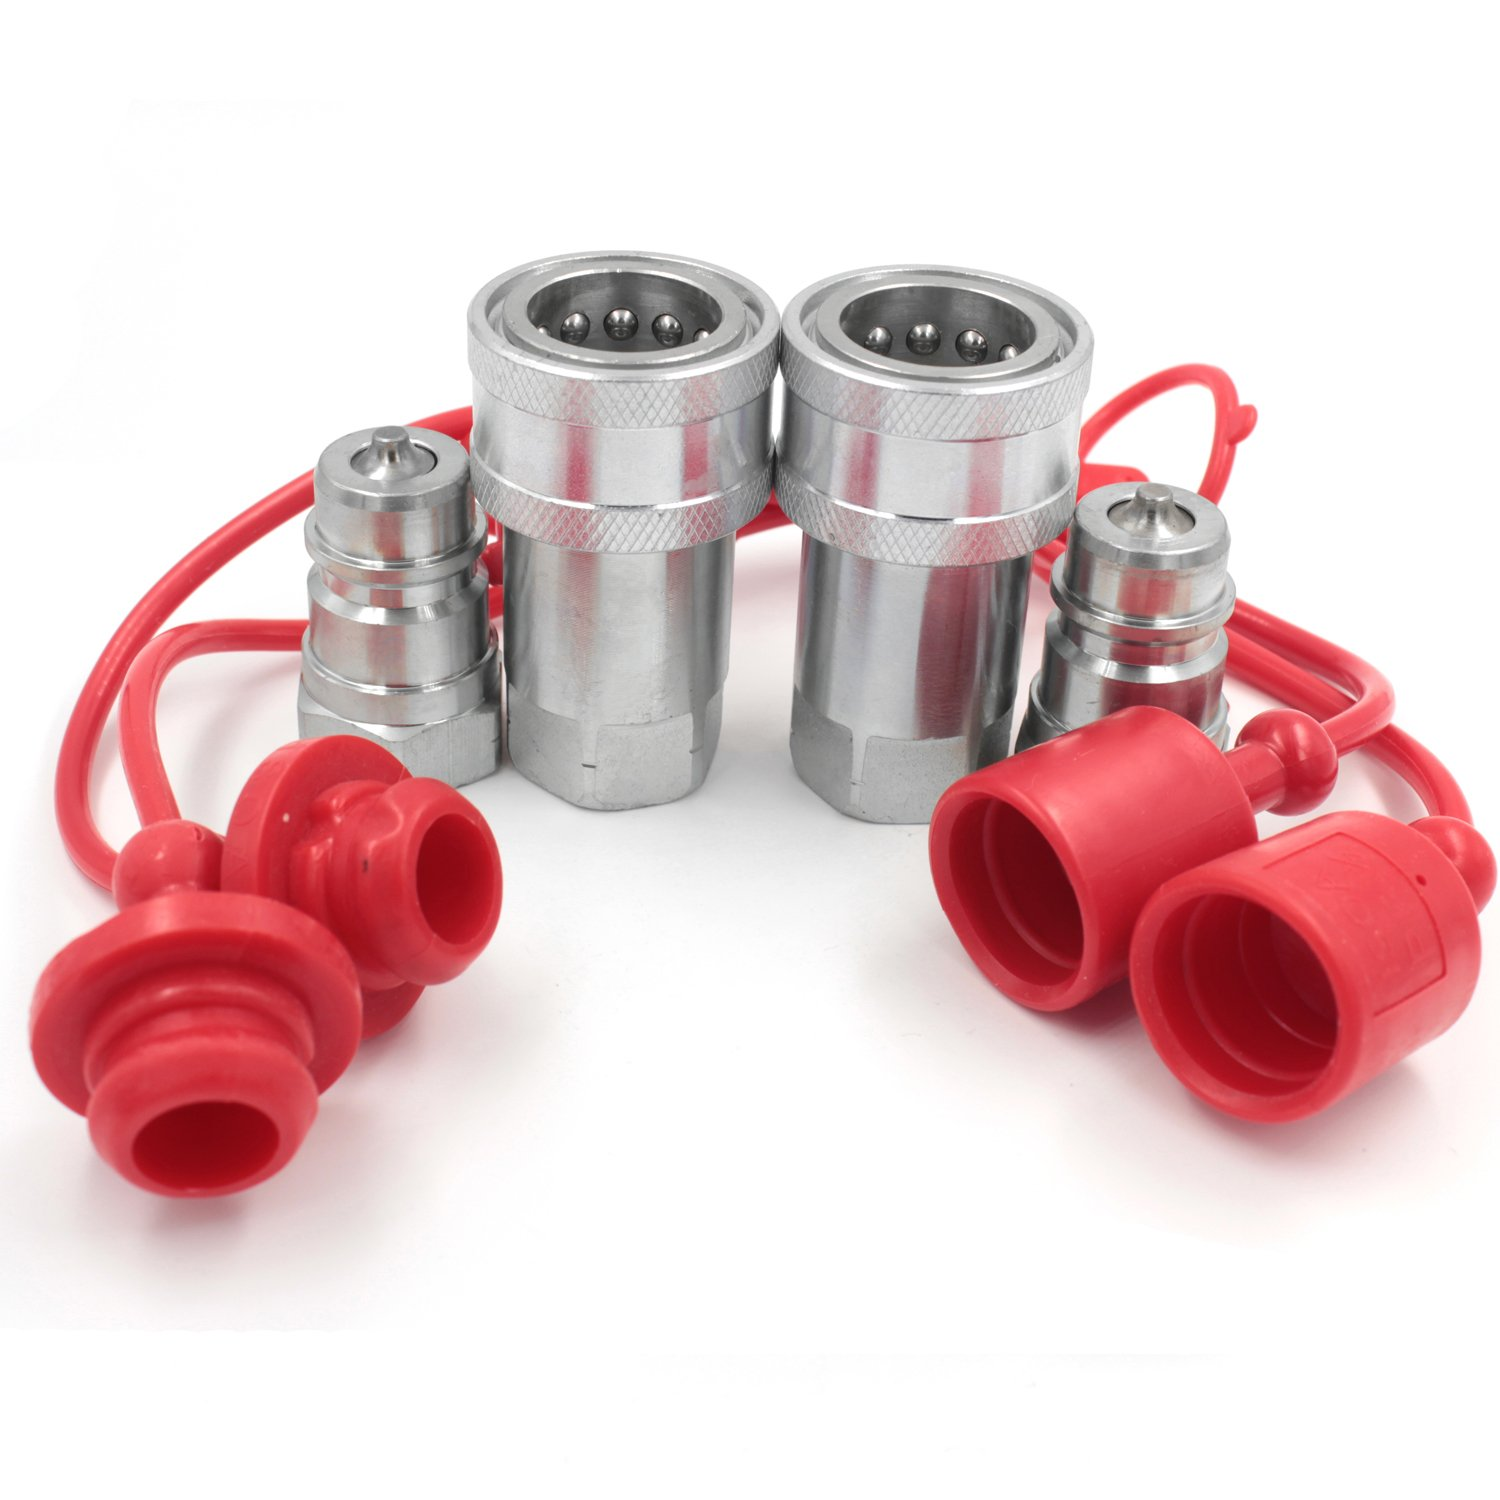 2 Sets of 1/2'' NPT Hydraulic Quick Connect Couplings Ball Fitting Female and Male with Dust Caps Compatible Parker 6600 Series